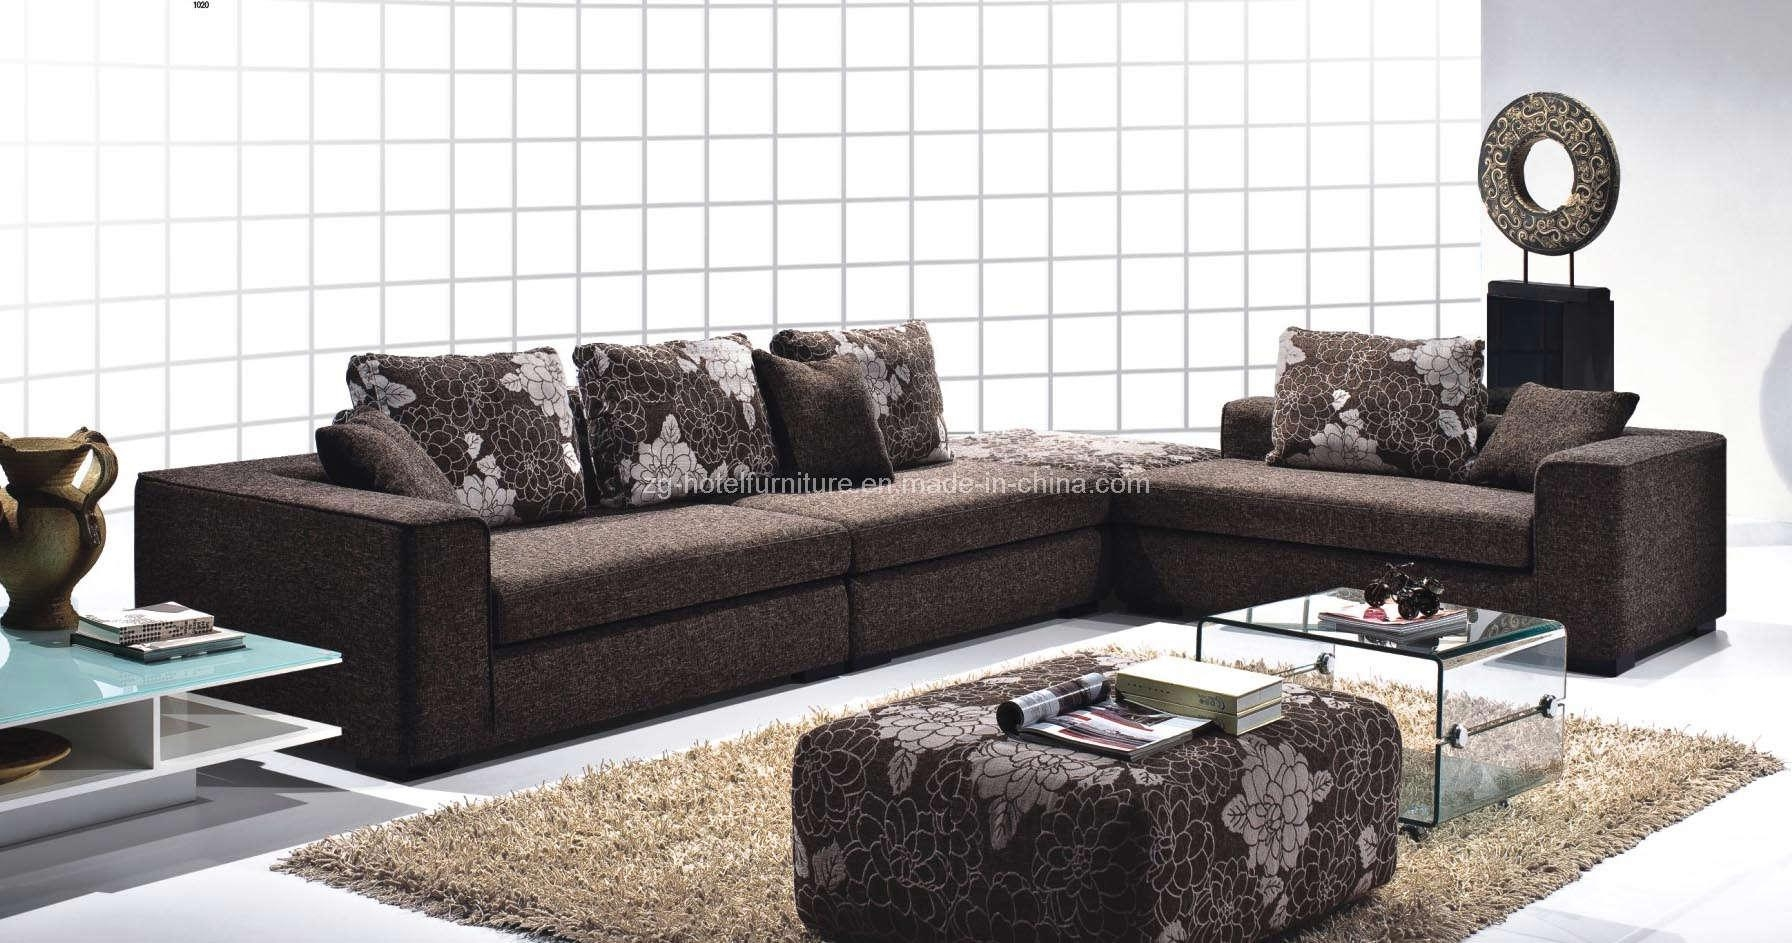 Living Room Sofa Living Room Design And Living Room Ideas Regarding Living Room Sofas (View 7 of 20)